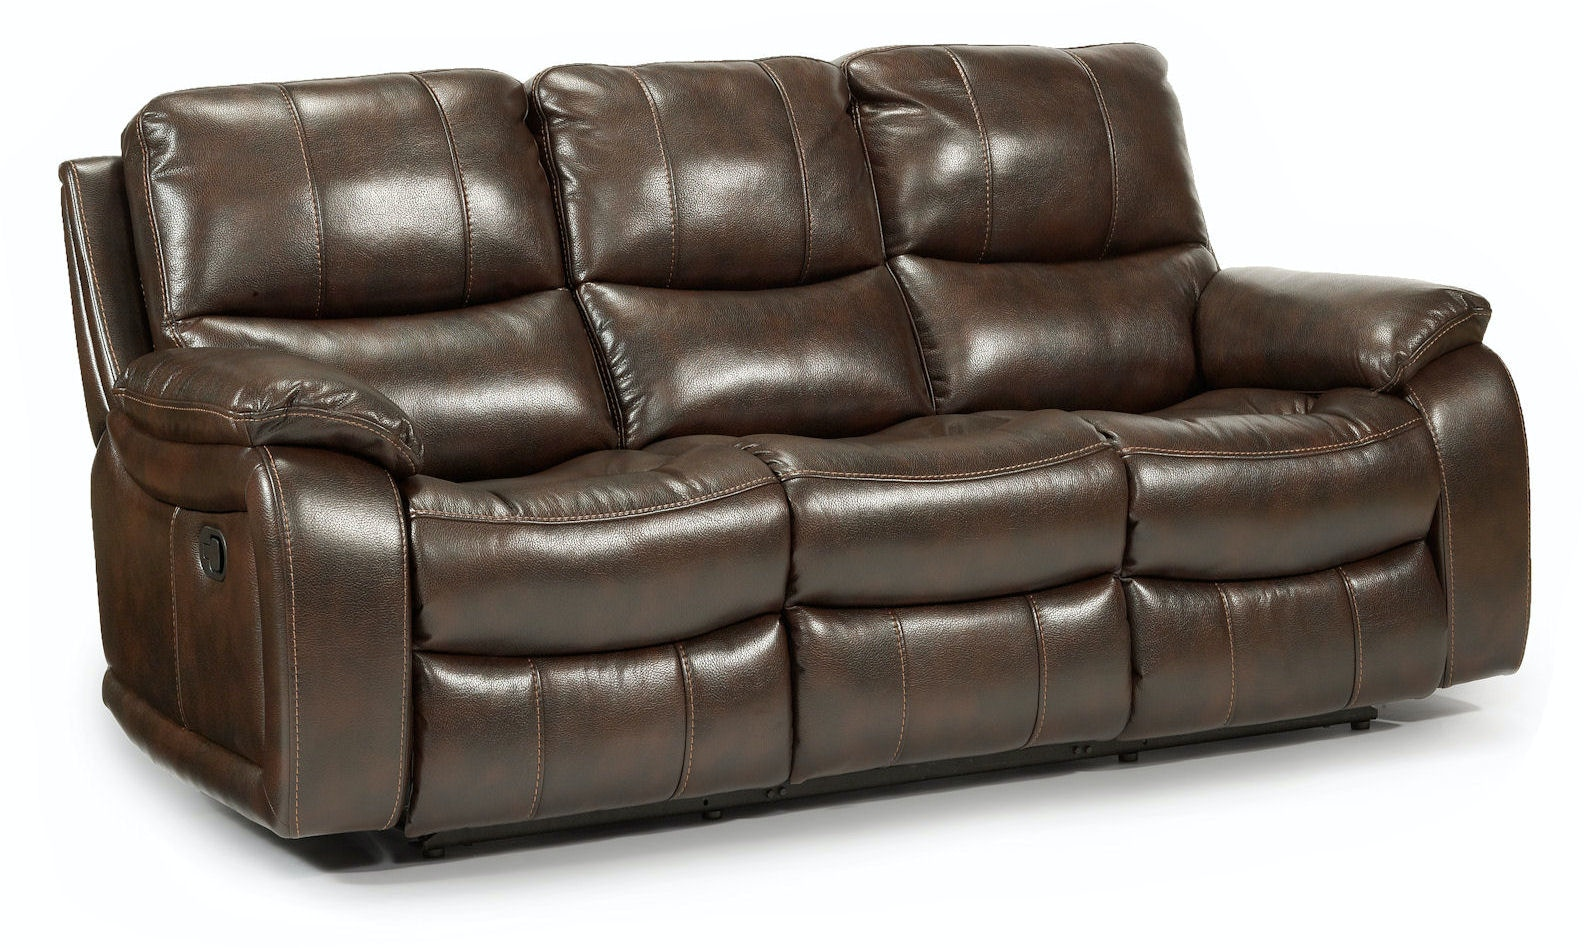 Flexsteel Woodstock Power Reclining Sofa 251141